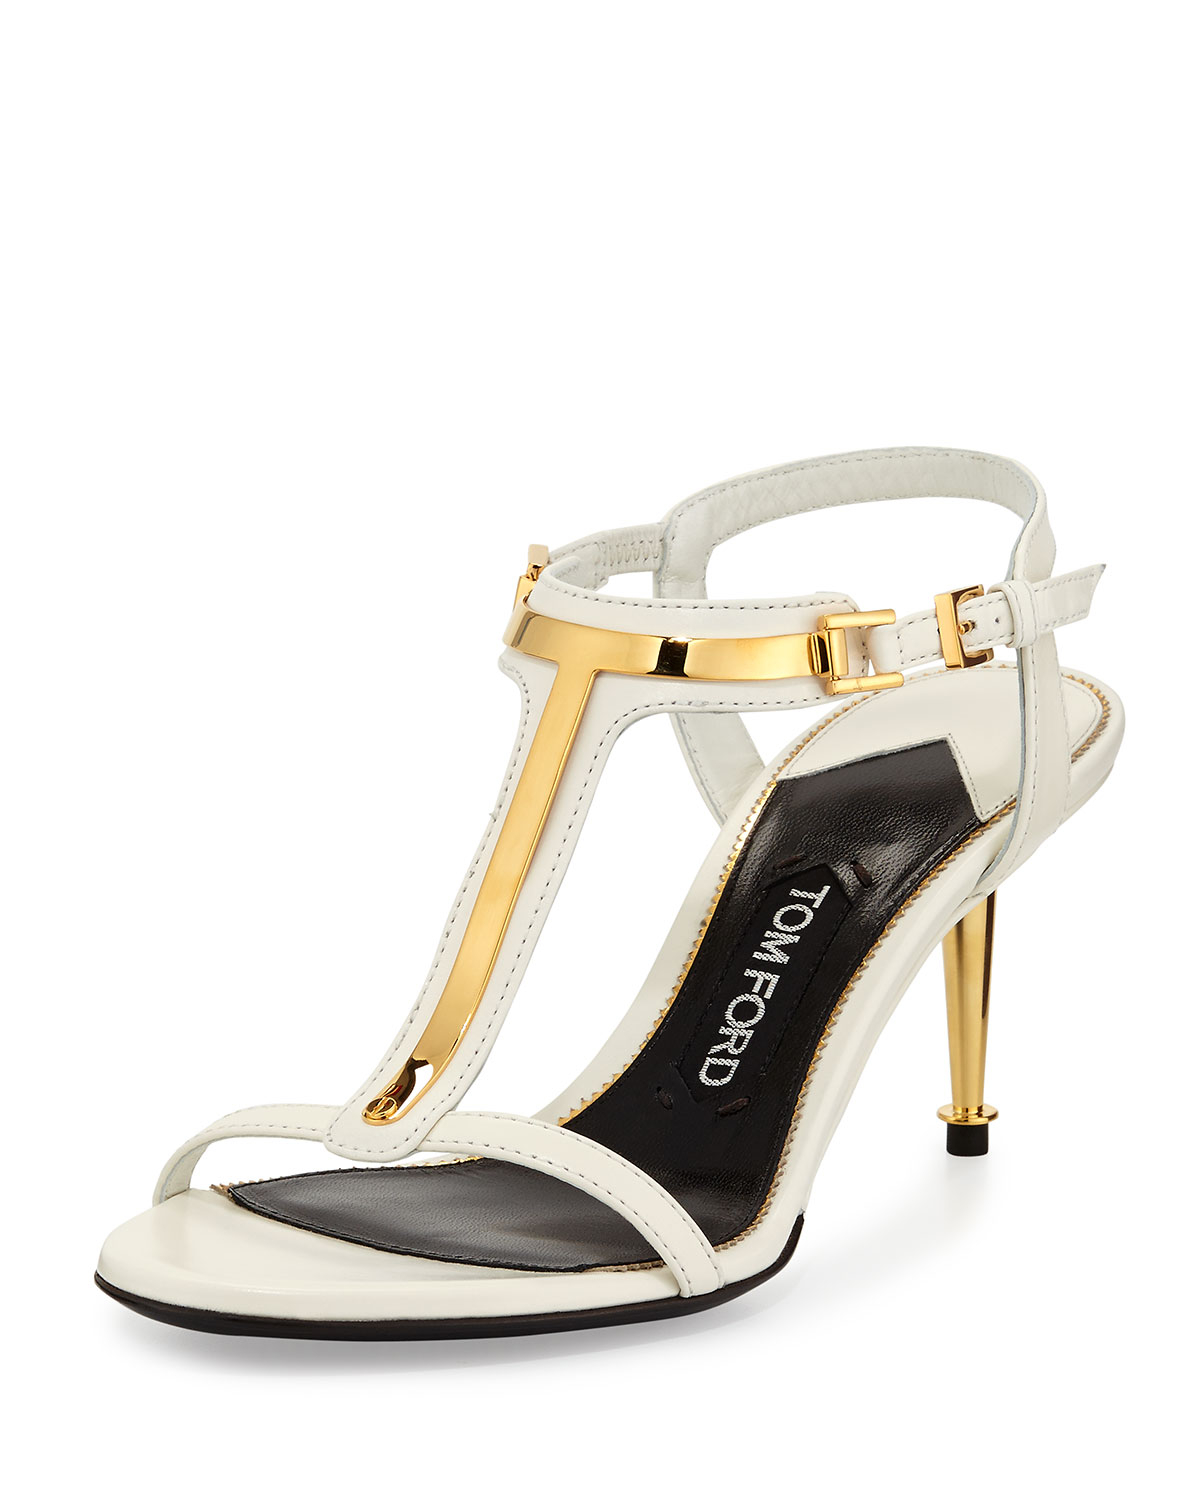 53e181ff48 Tom Ford Leather T-bar Sandal in White - Lyst